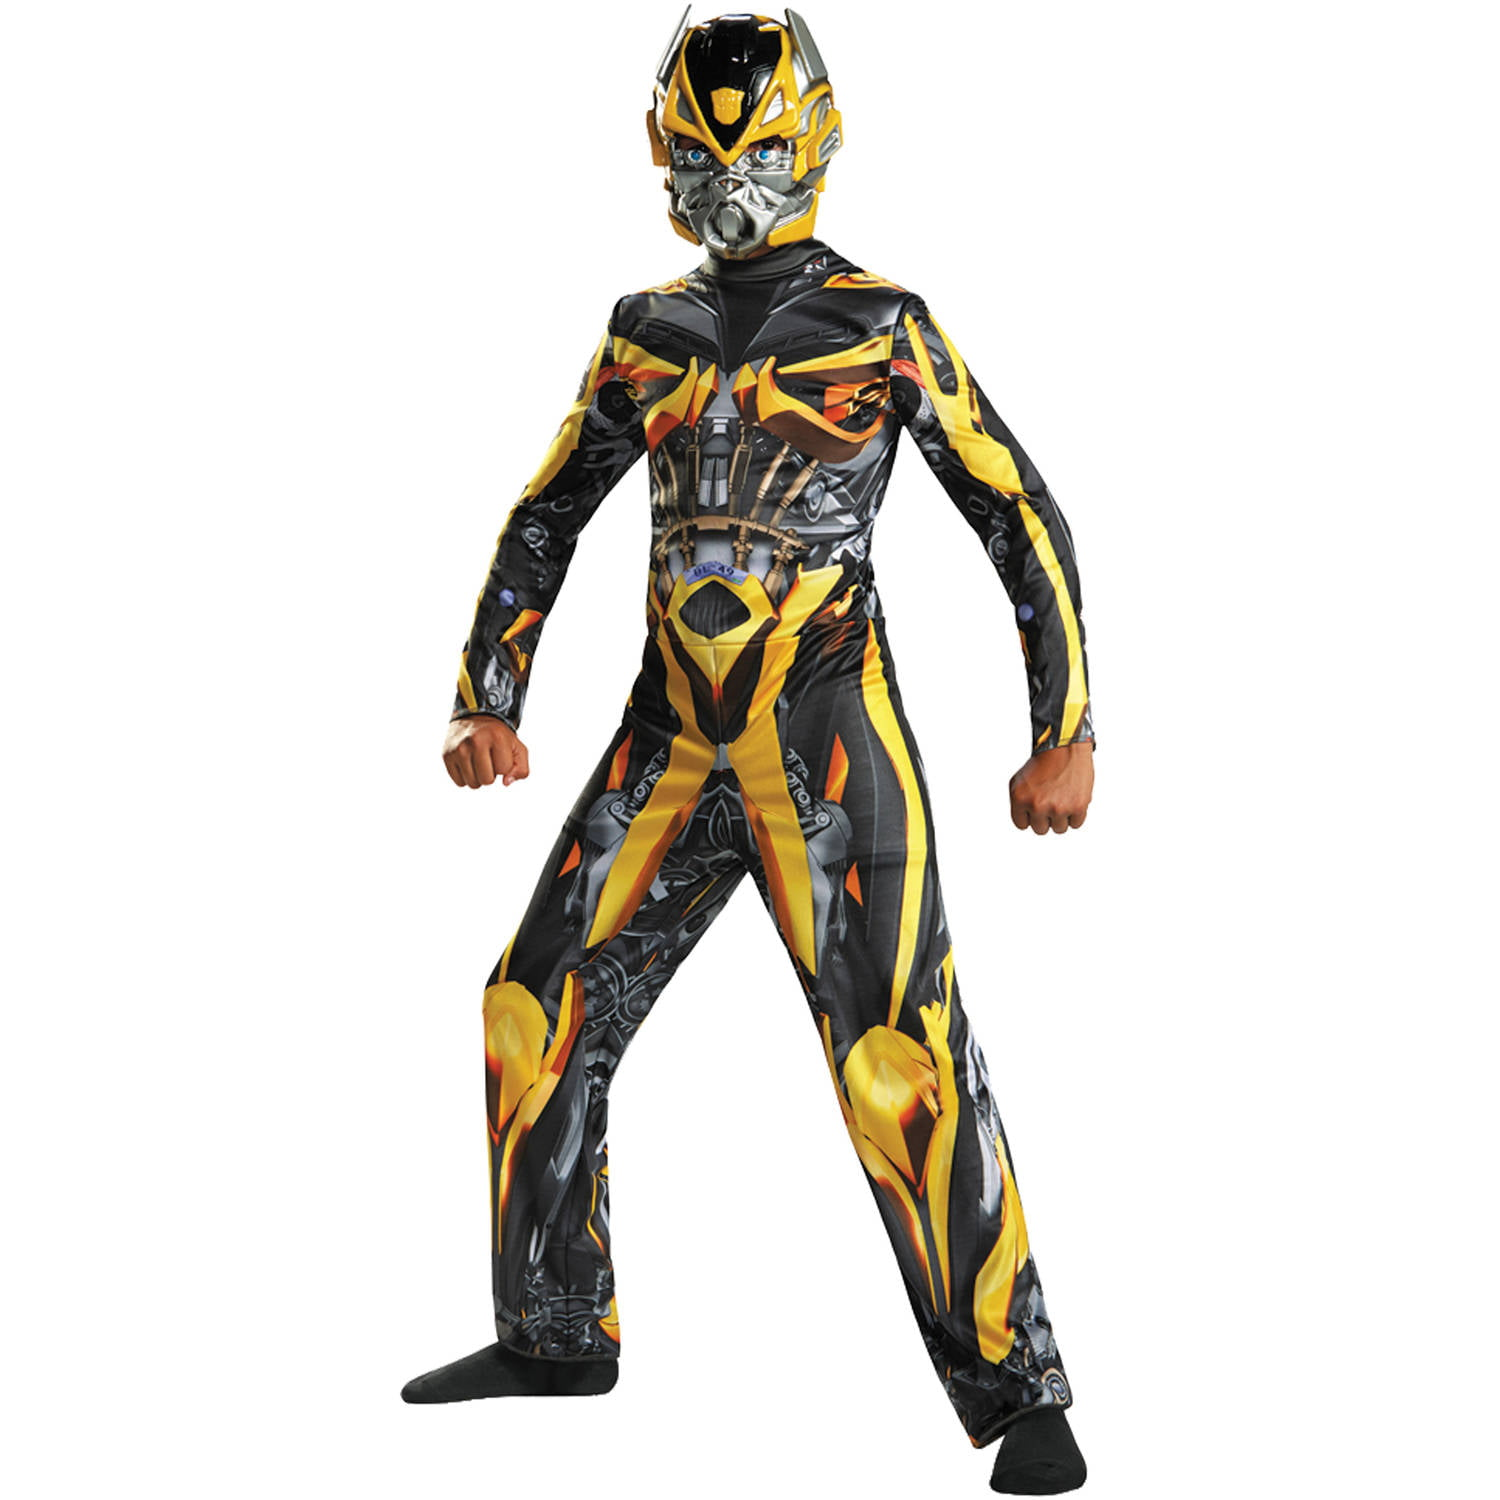 Bumble Bee Transformer Costume Transformers Bumblebee...